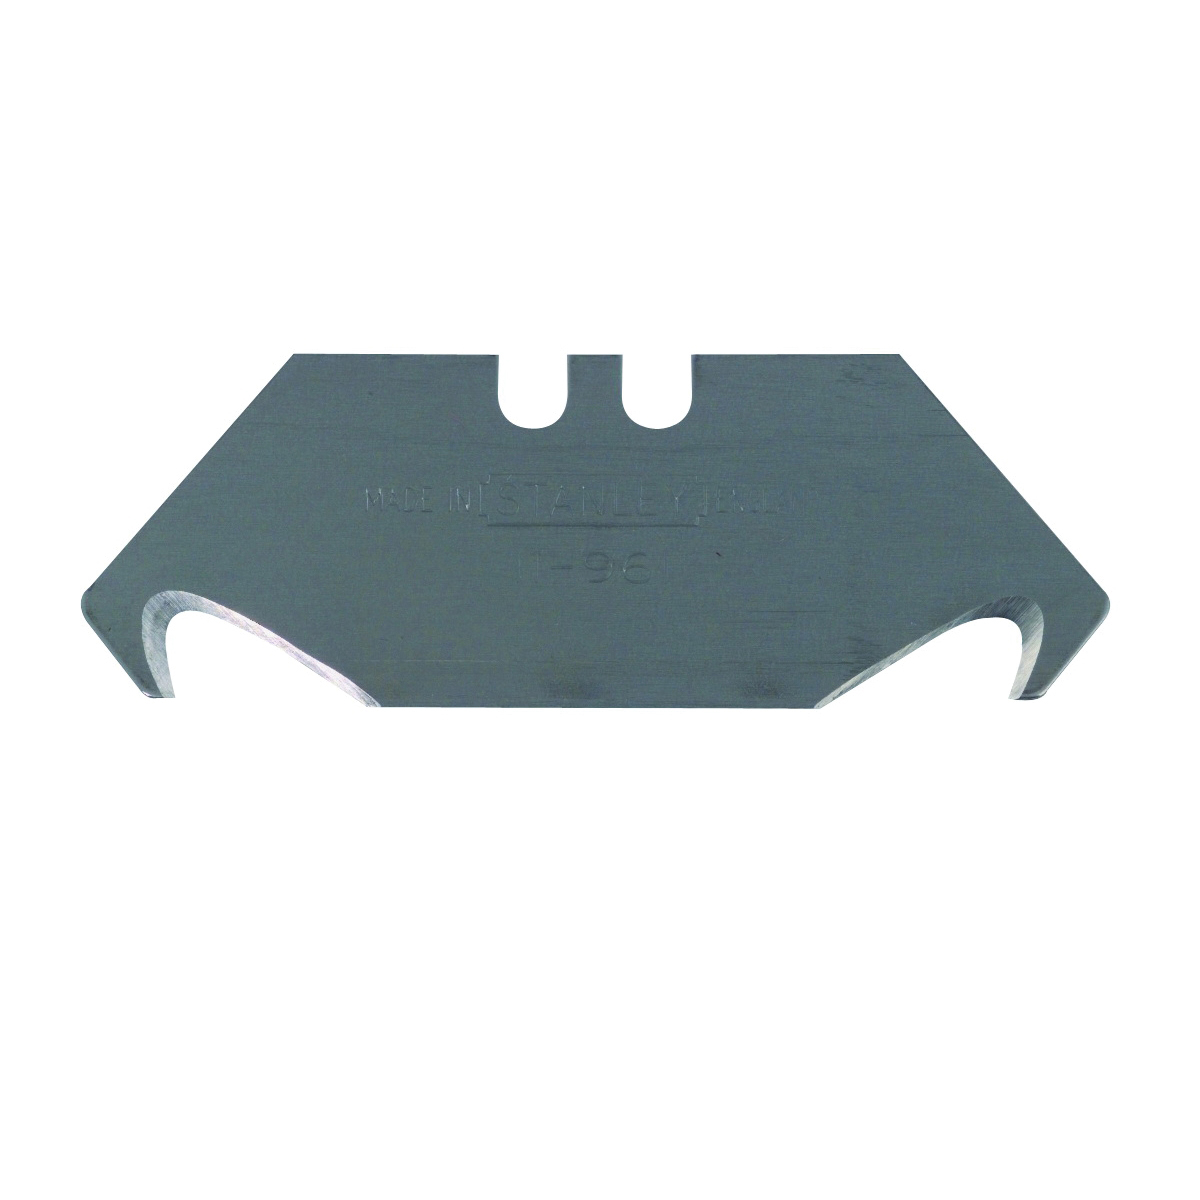 Picture of STANLEY 11-961A Hook Blade, 2-1/16 in L, Carbon Steel, 2 -Point, 100/PK, Carded